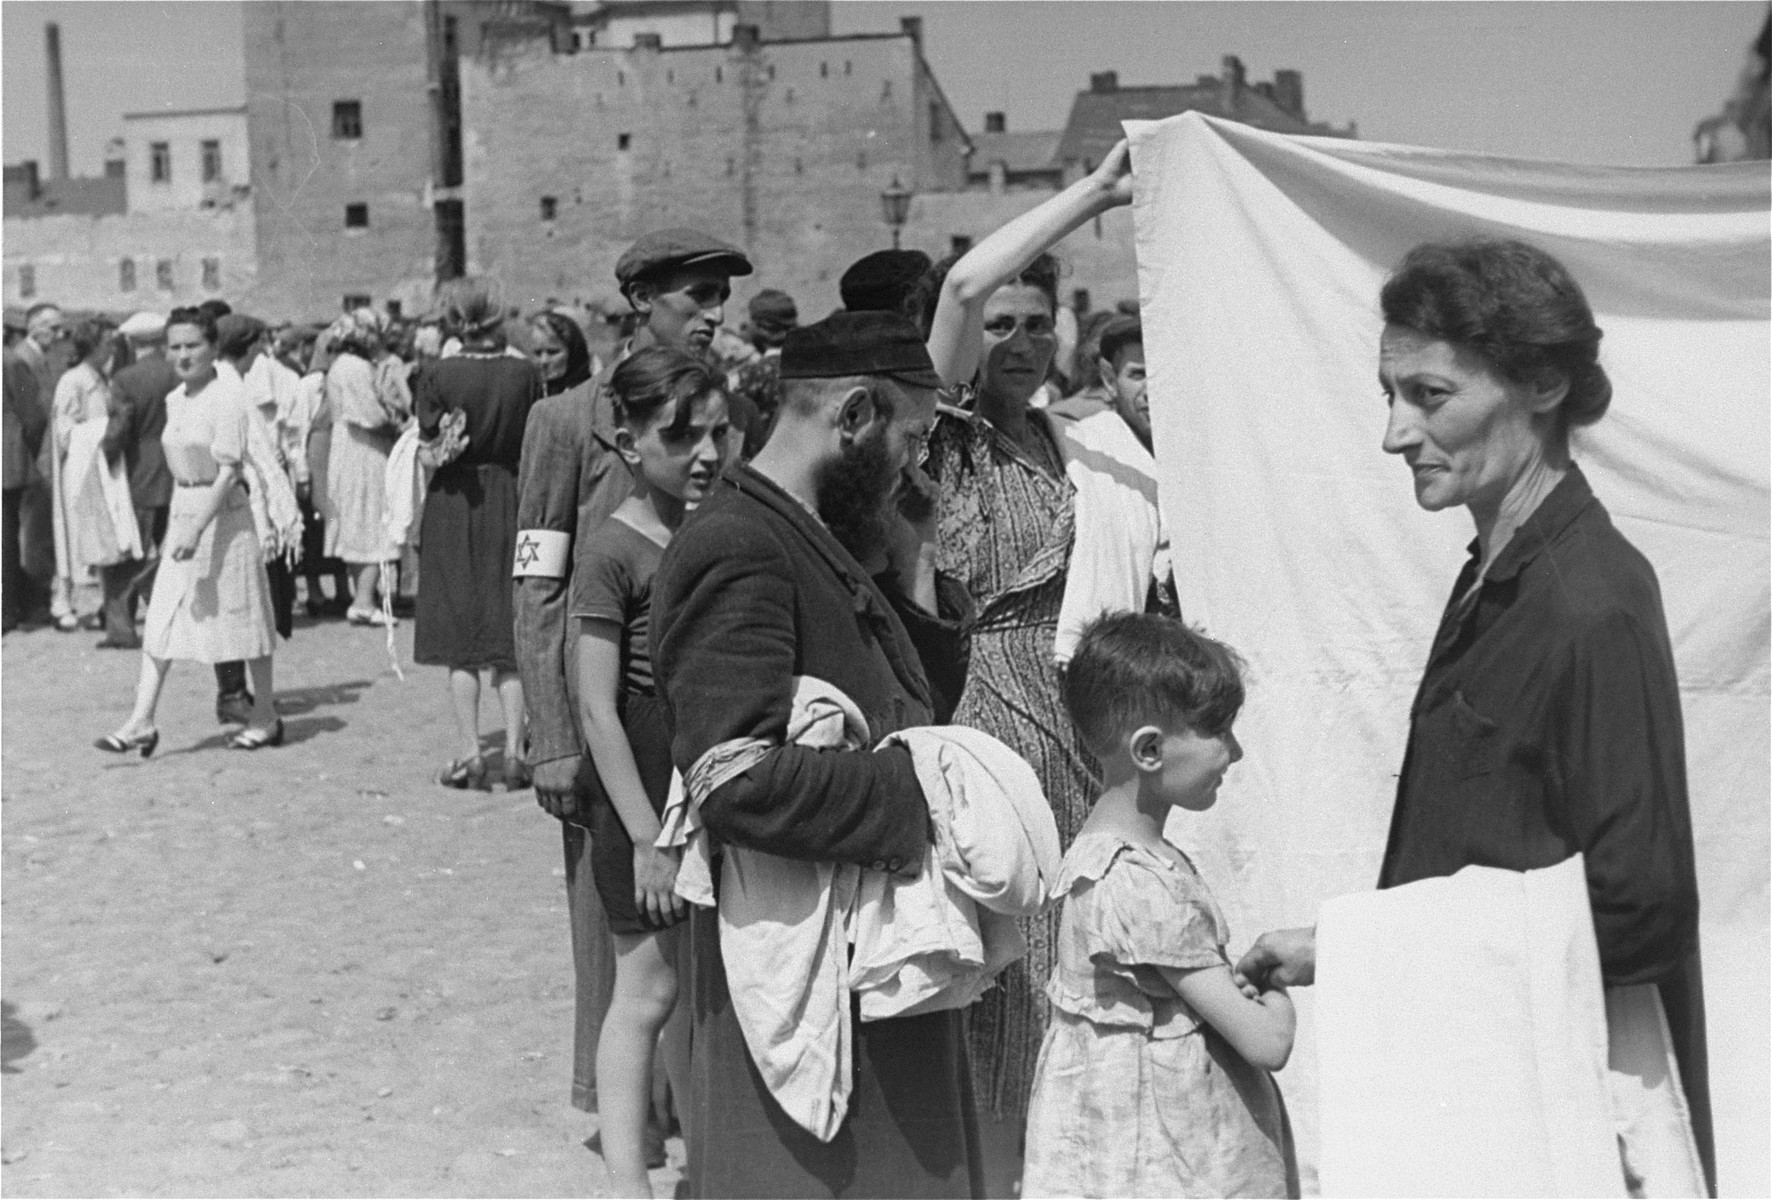 Jews shop at an open air market in the Warsaw ghetto.